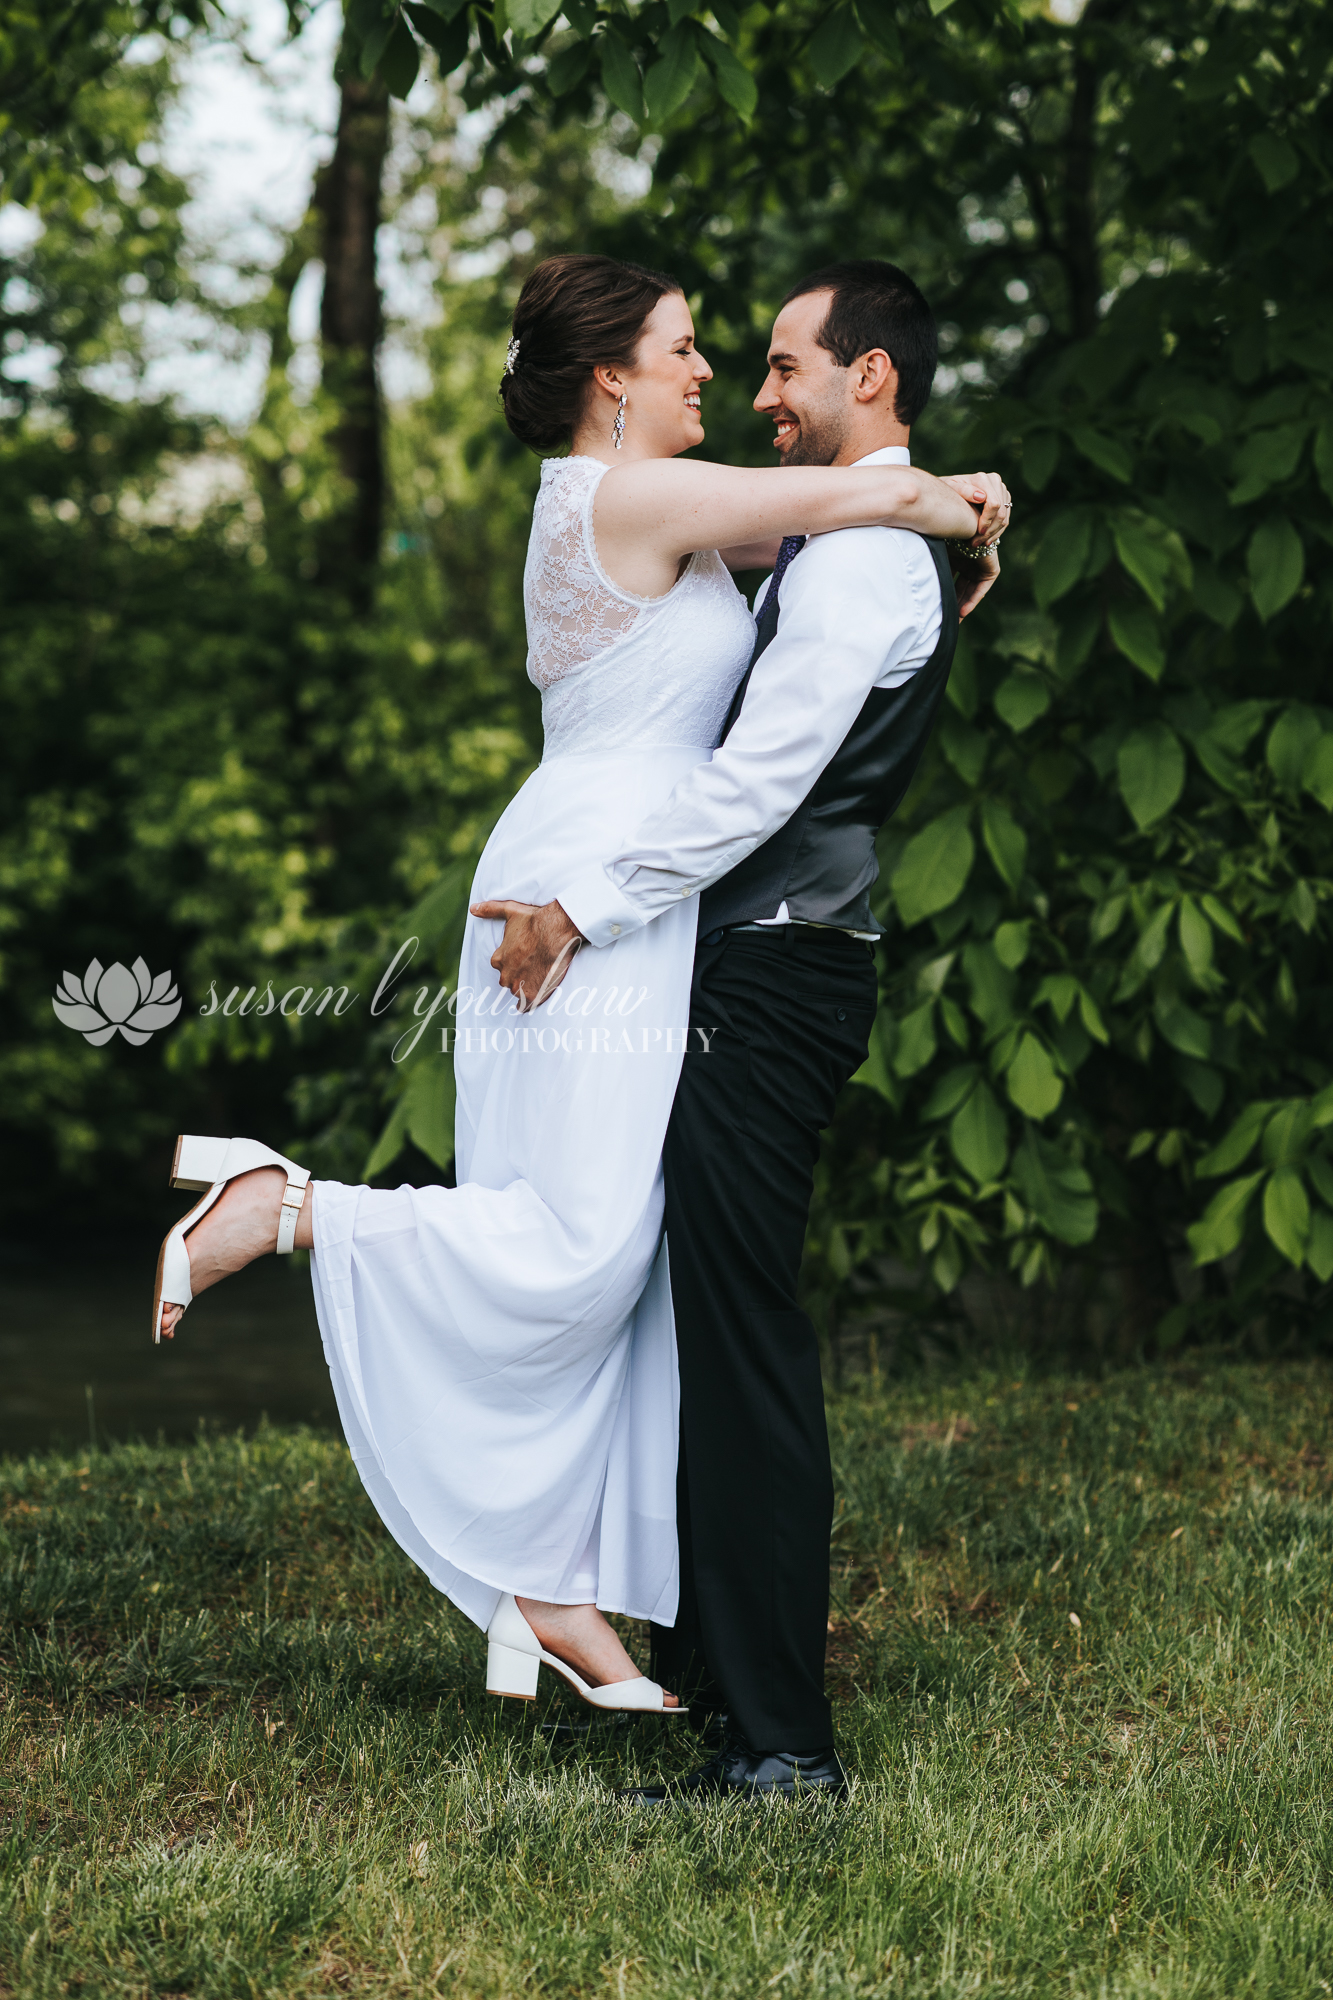 Adena and  Erik Wedding 05-17-2019 SLY Photography-34.jpg